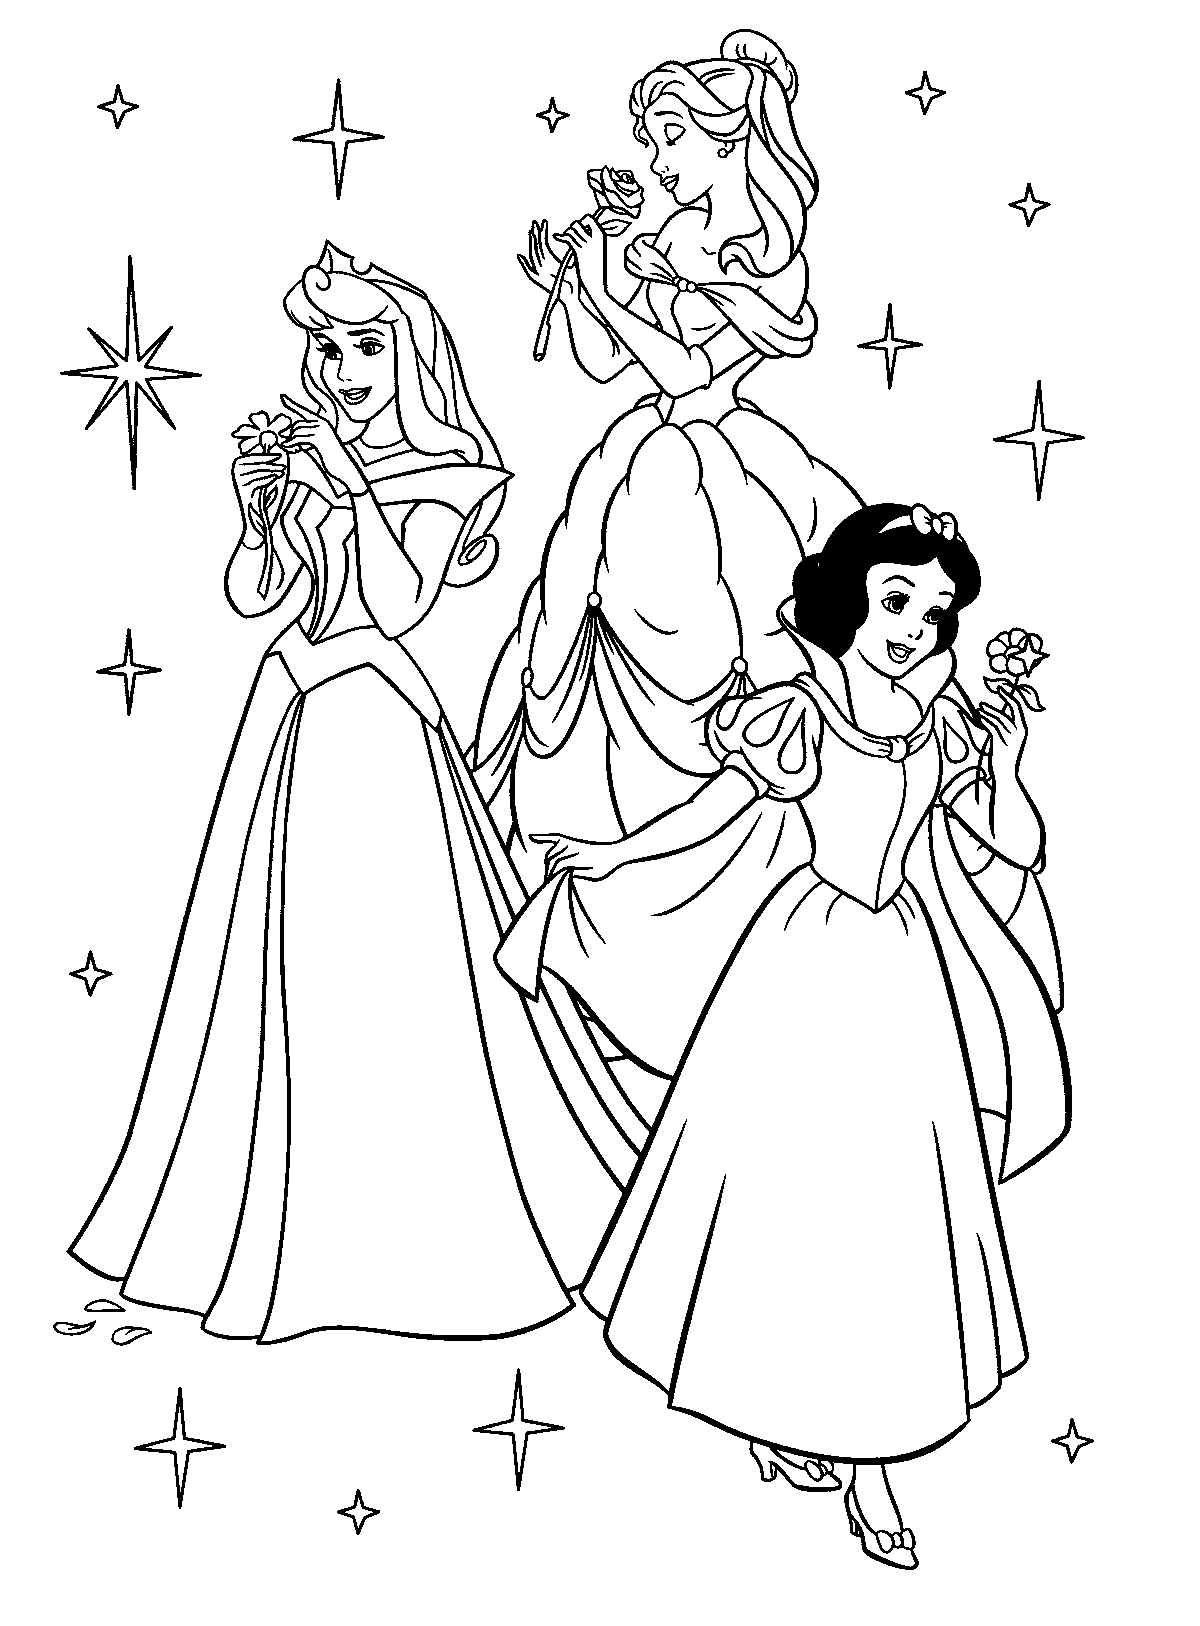 11 Disney Princess Coloring Page To Print